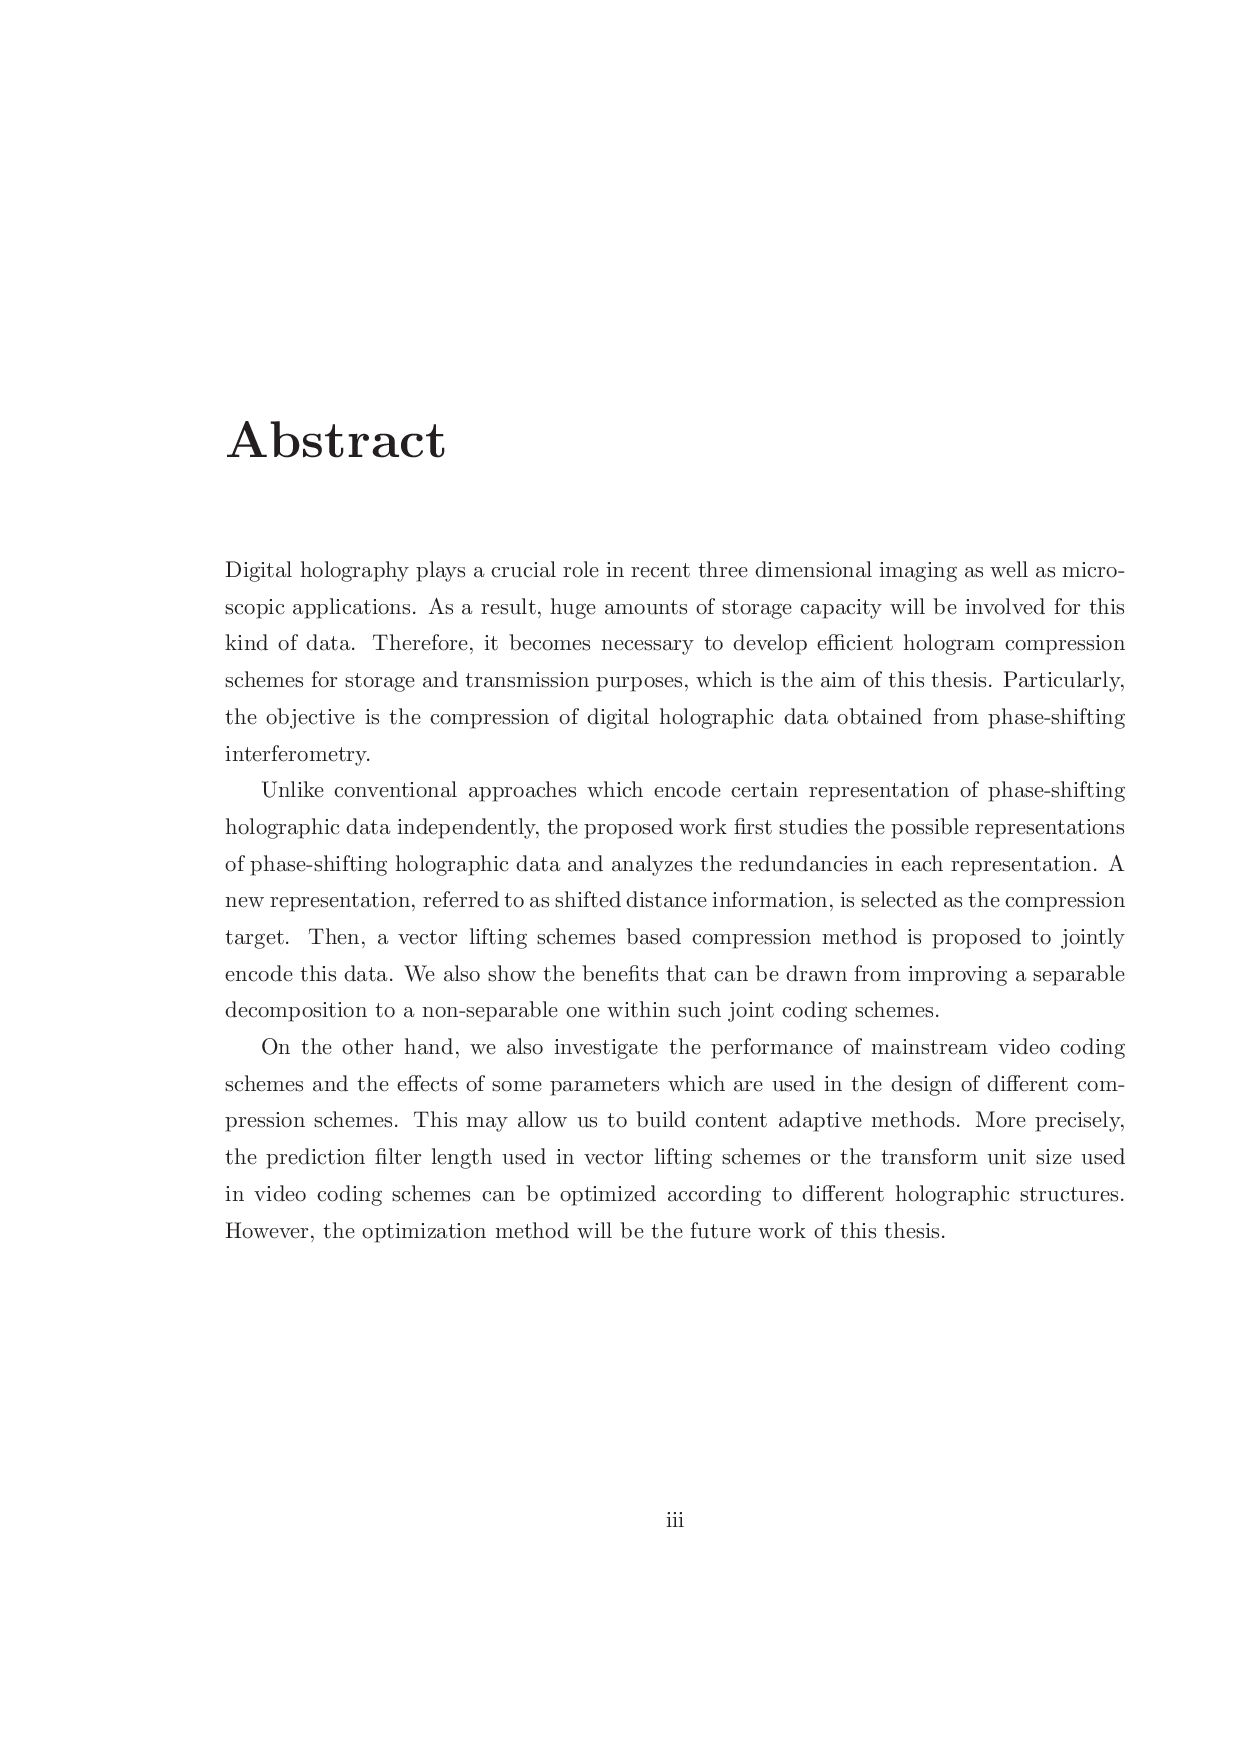 Thesis Statement For Education Essay First Few Pages  Click To Enlarge Essay For Health also Exemplification Essay Thesis Compression Methods For Digital Holographic Data  Eurasip Global Warming Essay In English